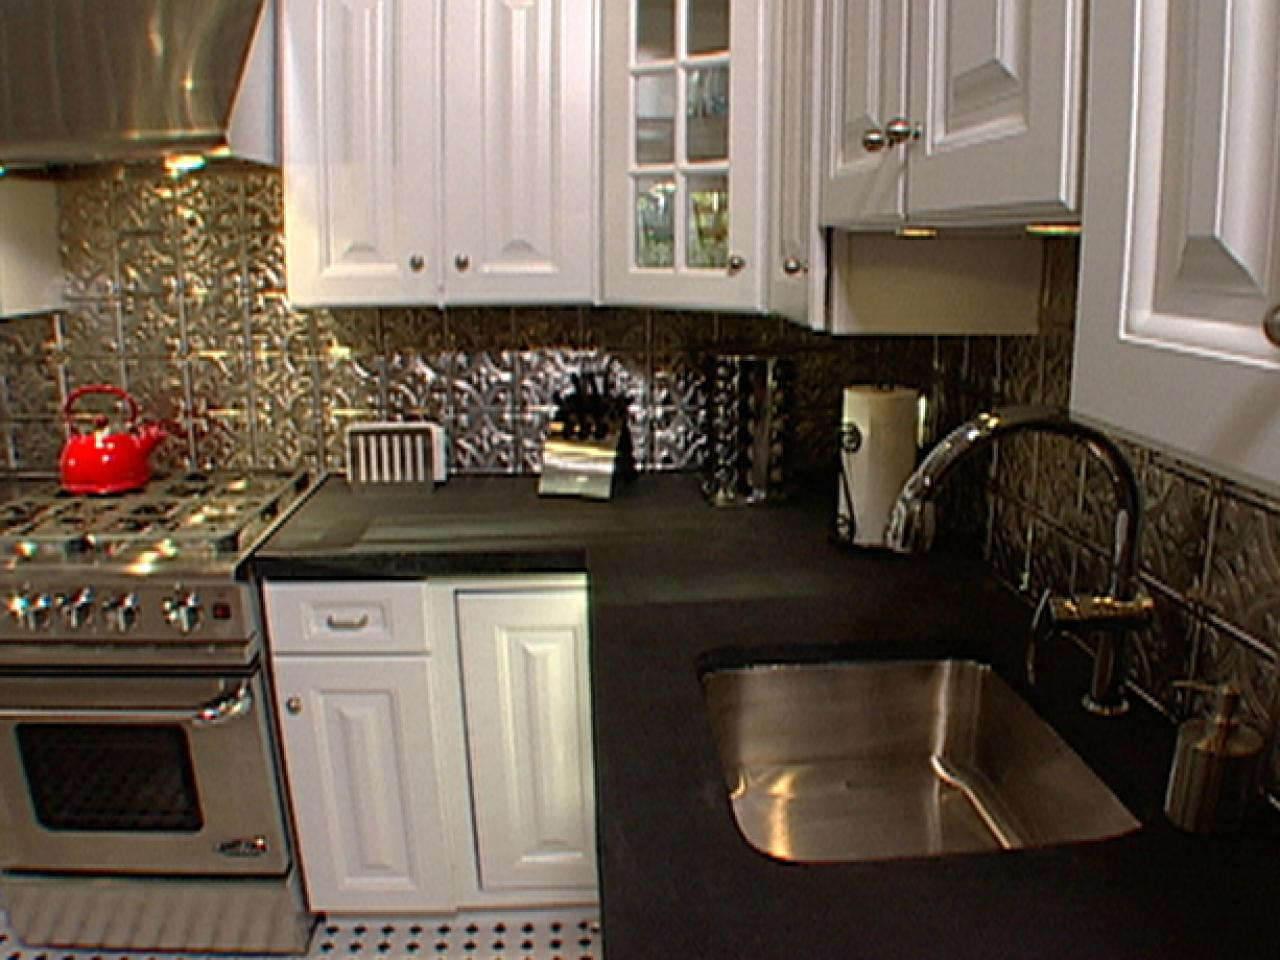 Backsplash Designs Decoration How to Install Ceiling Tiles as a Backsplash